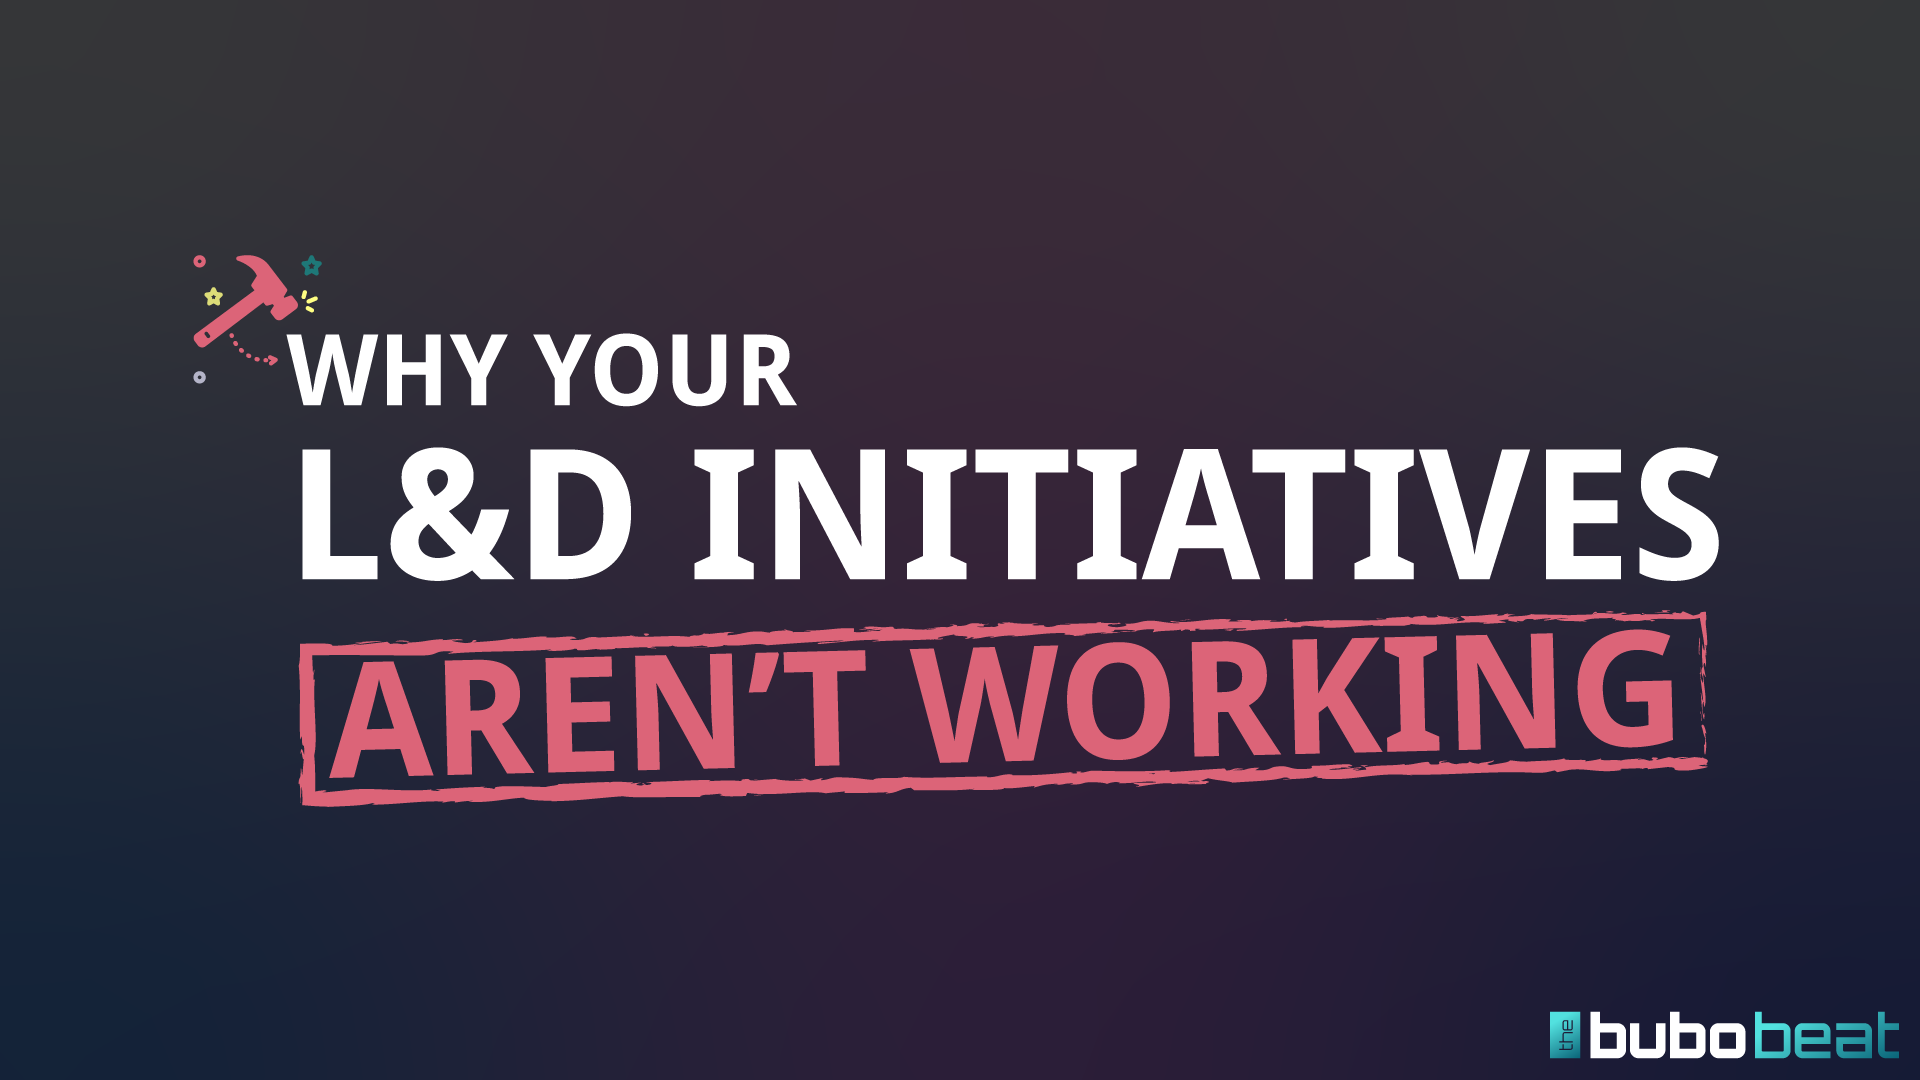 Why your l&d initiatives aren't working